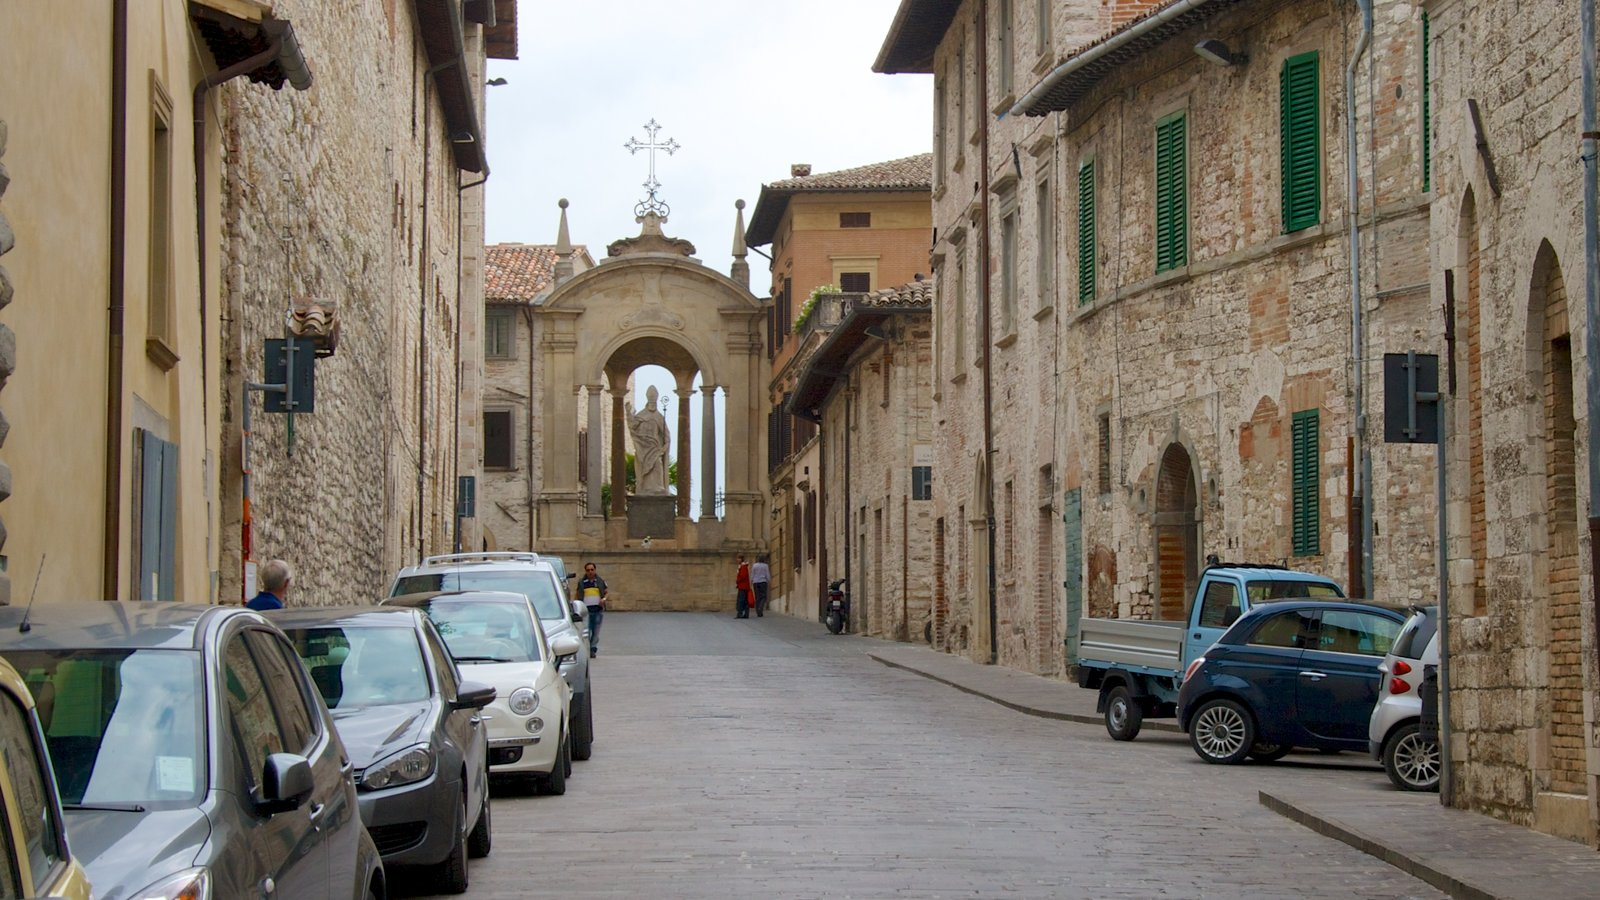 Gubbio featuring a church or cathedral, heritage architecture and religious aspects